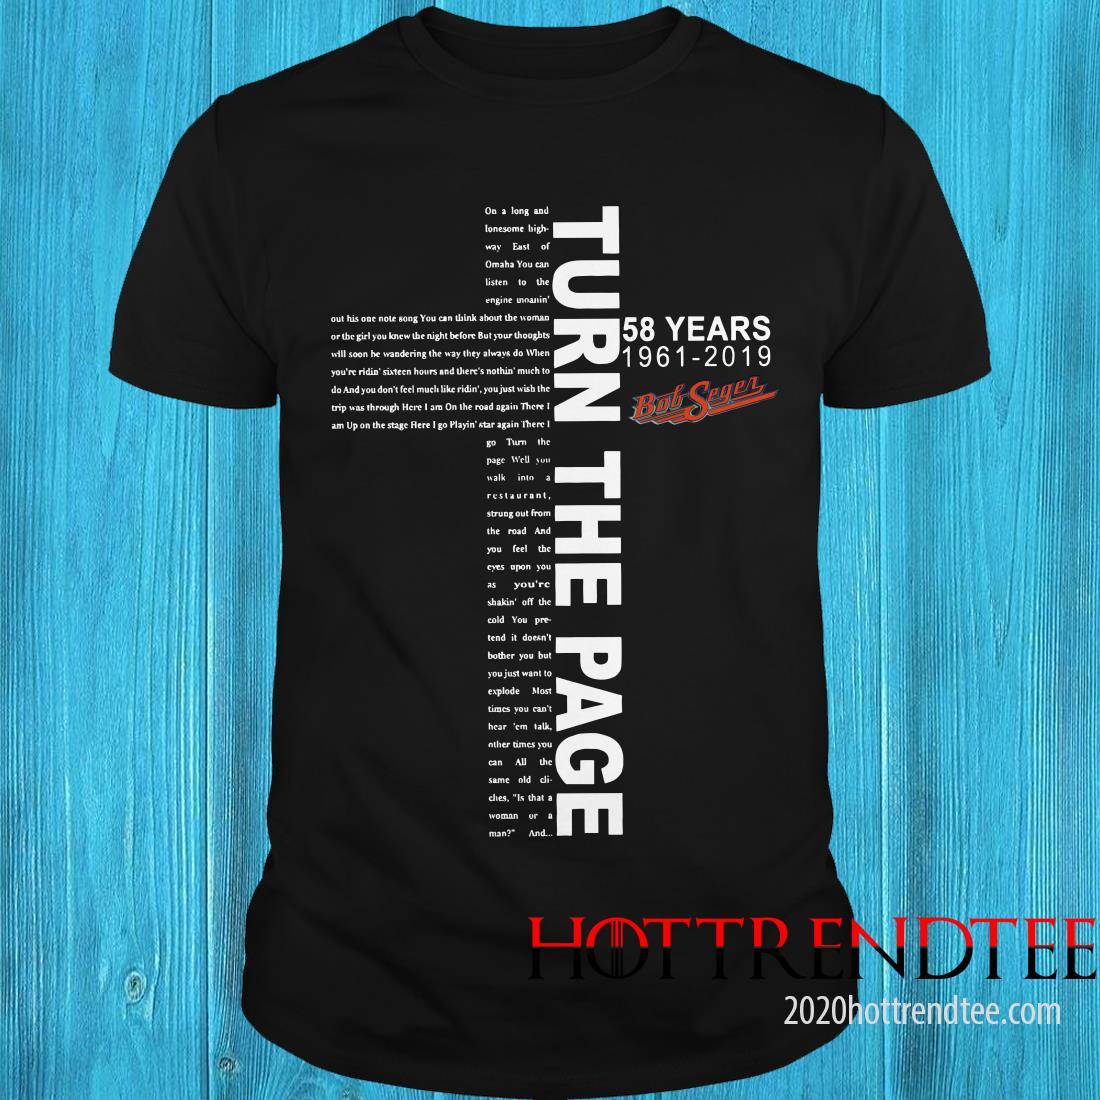 Turn The Page 58 Years Bob Seger Jesus Shirt